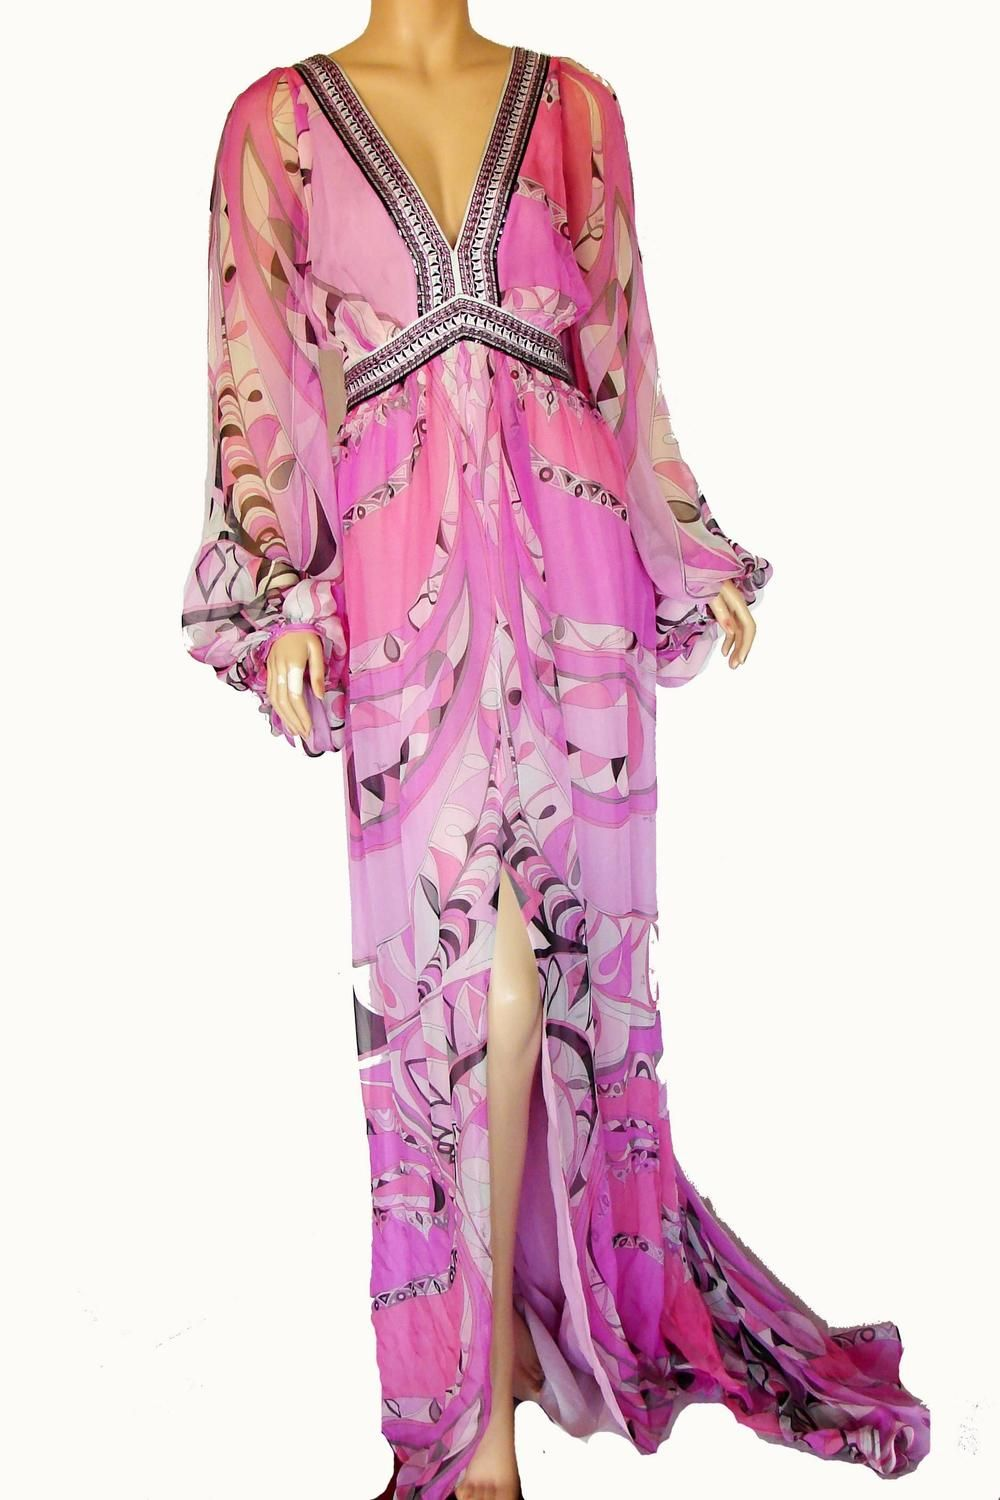 7cd0782702776 Emilio Pucci Embellished Silk Chiffon Maxi Dress Gown Size 38 New with Tags  image 4